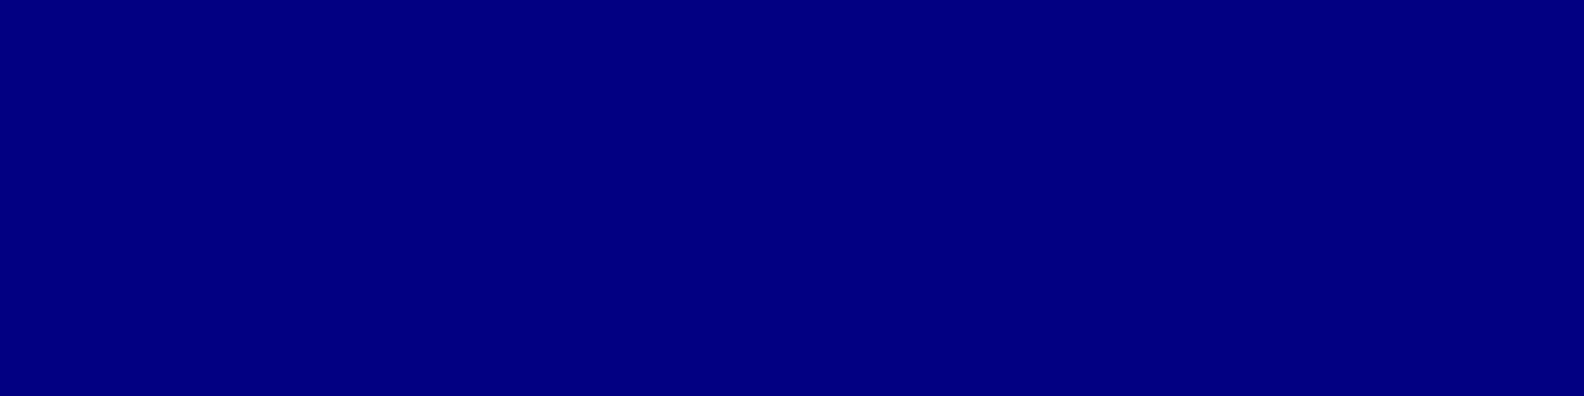 1584x396 Navy Blue Solid Color Background